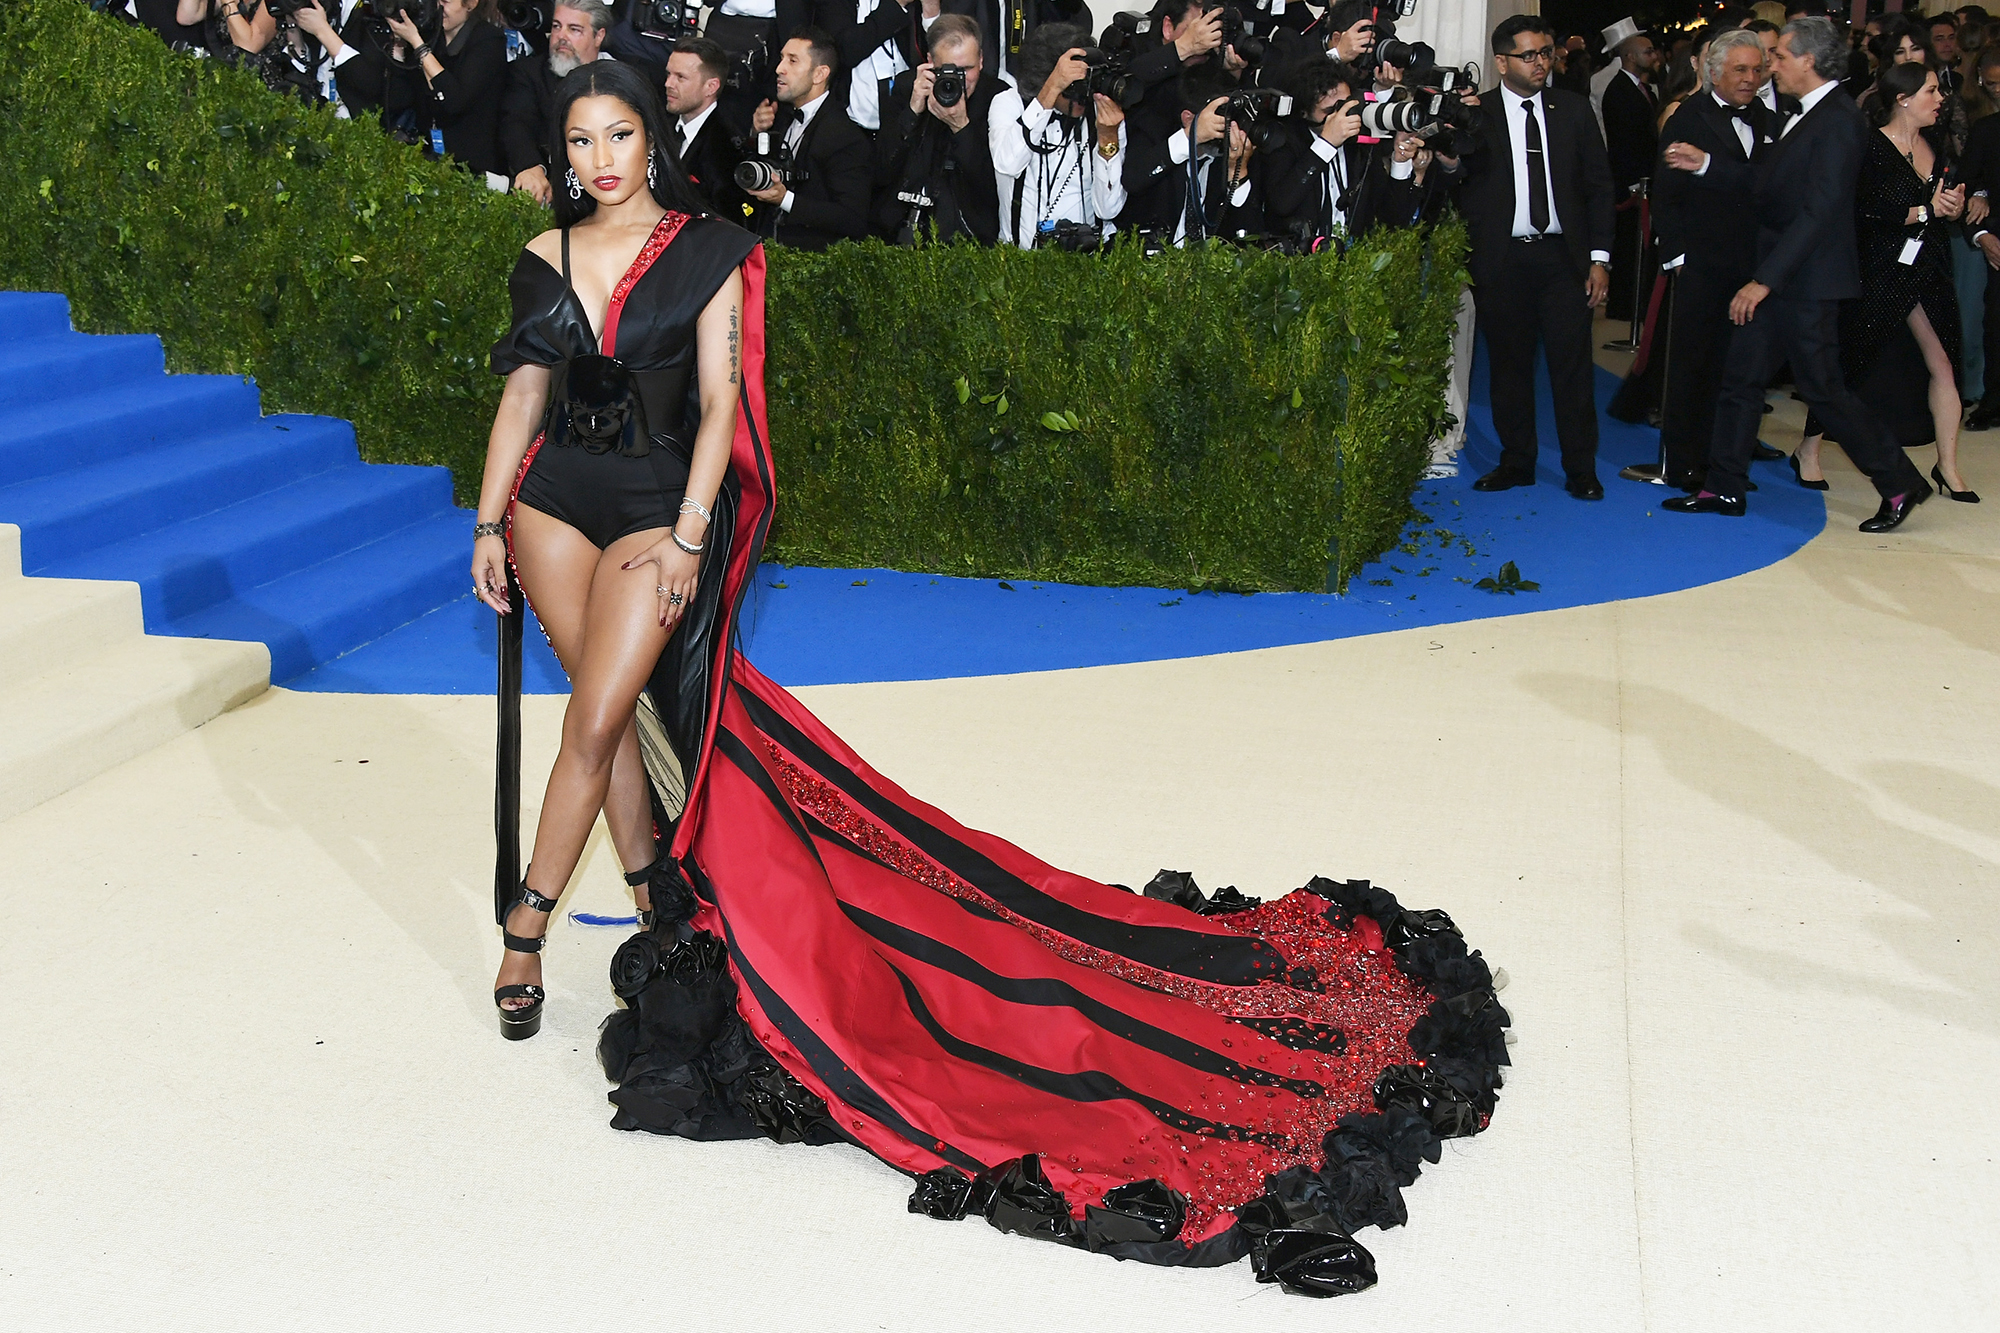 Nicki Minaj attends The Metropolitan Museum of Art's Costume Institute benefit gala celebrating the opening of the Rei Kawakubo/Comme des Garçons: Art of the In-Between exhibition in New York City, on May 1, 2017.